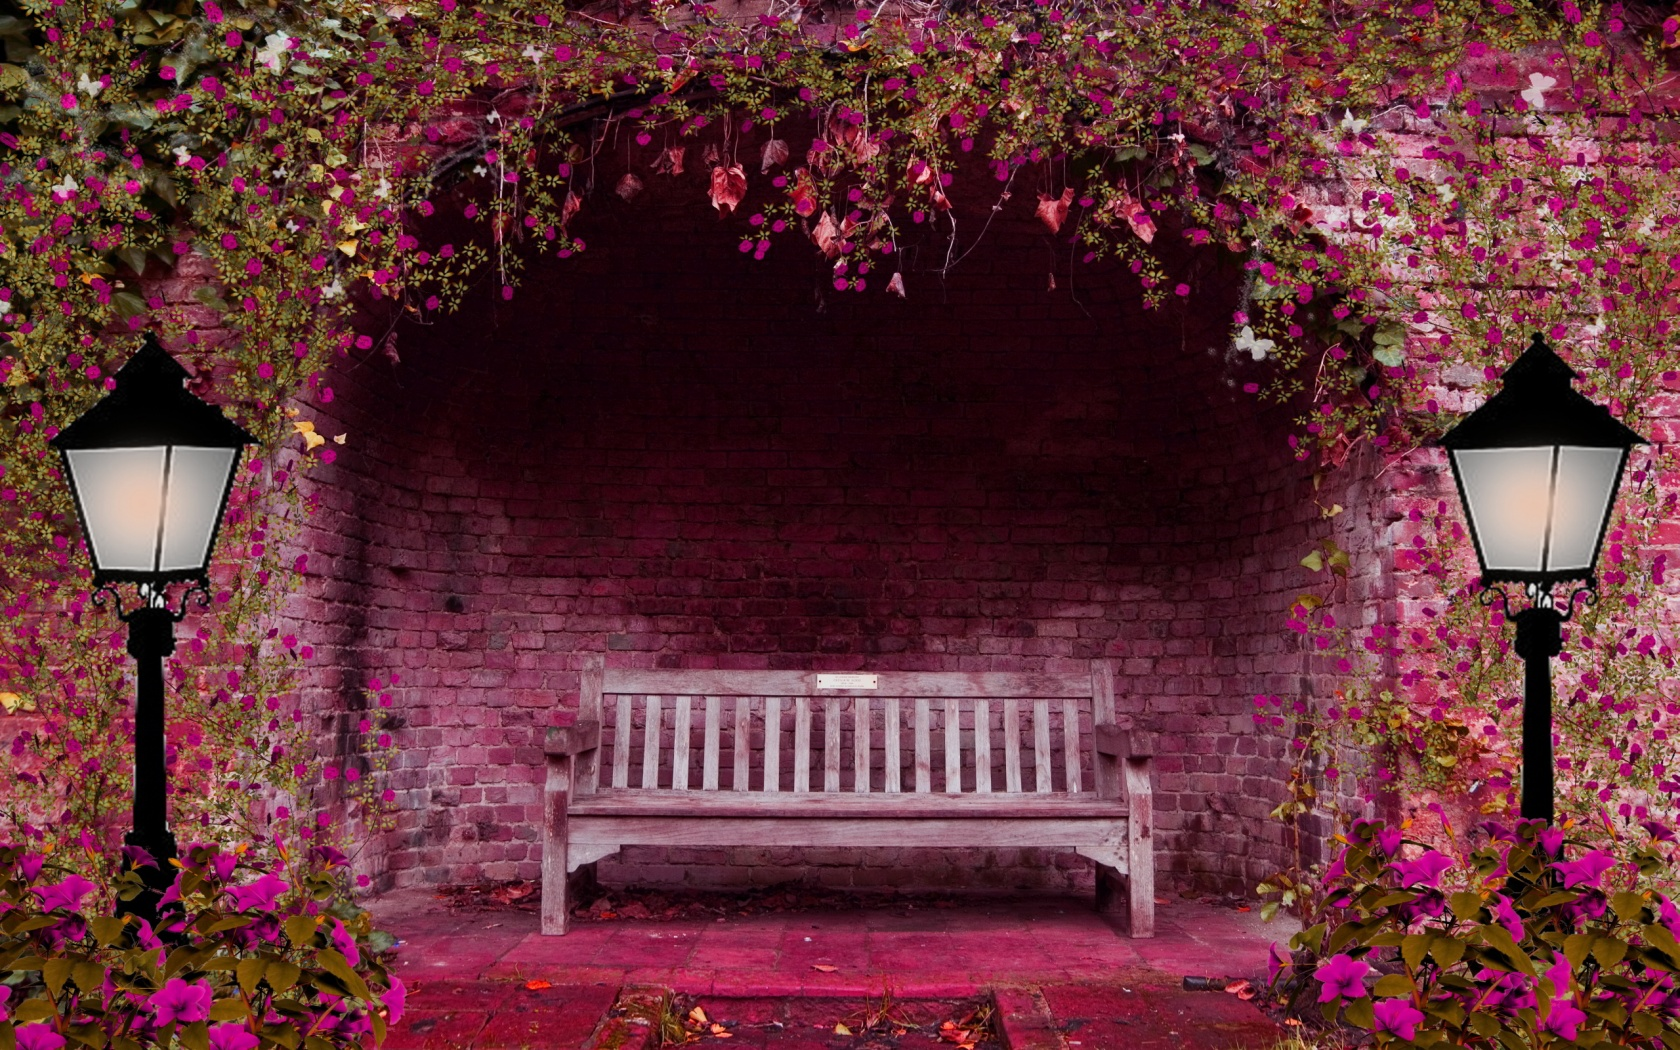 Hd wallpaper park - Empty Benches Hd Wallpapers